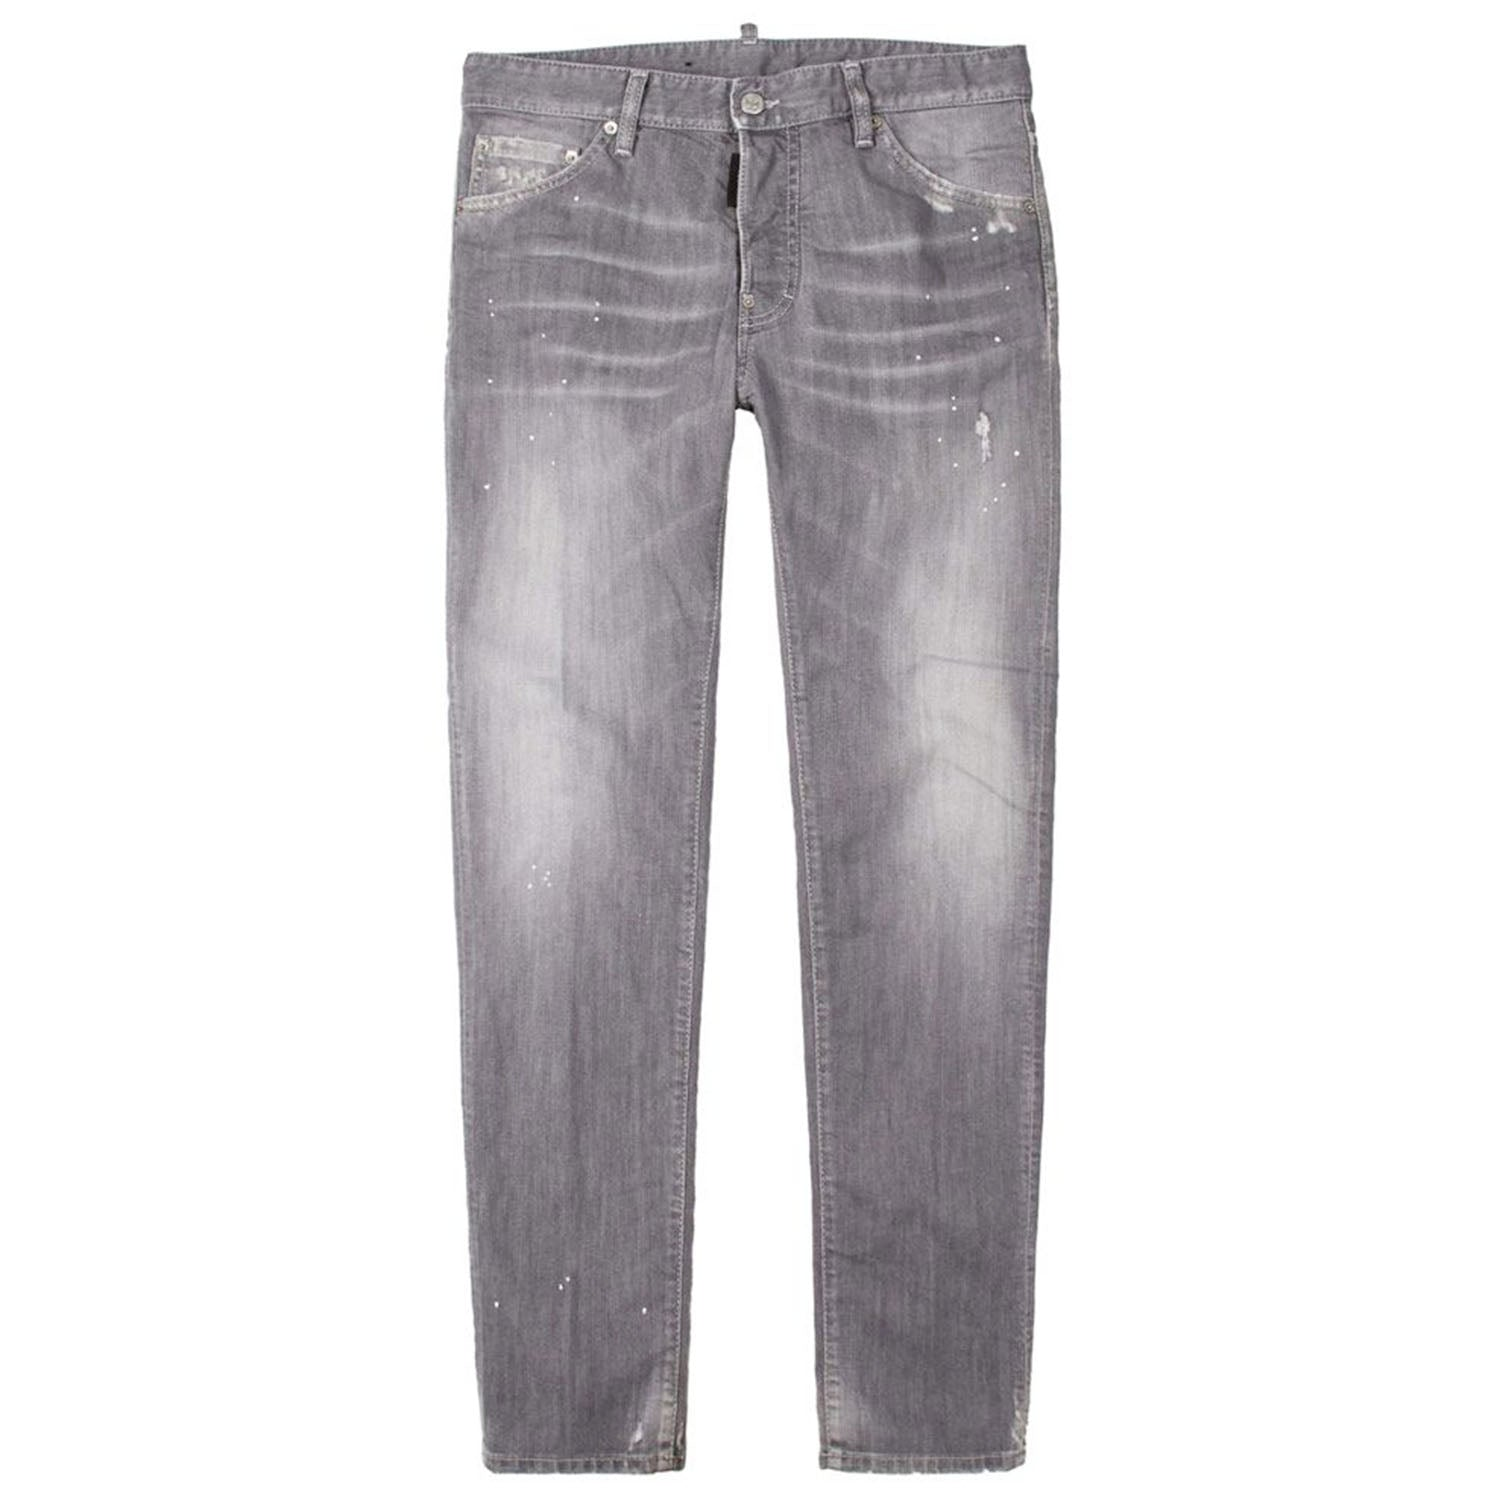 DSquared2 Jeans Grey - Cool Guy